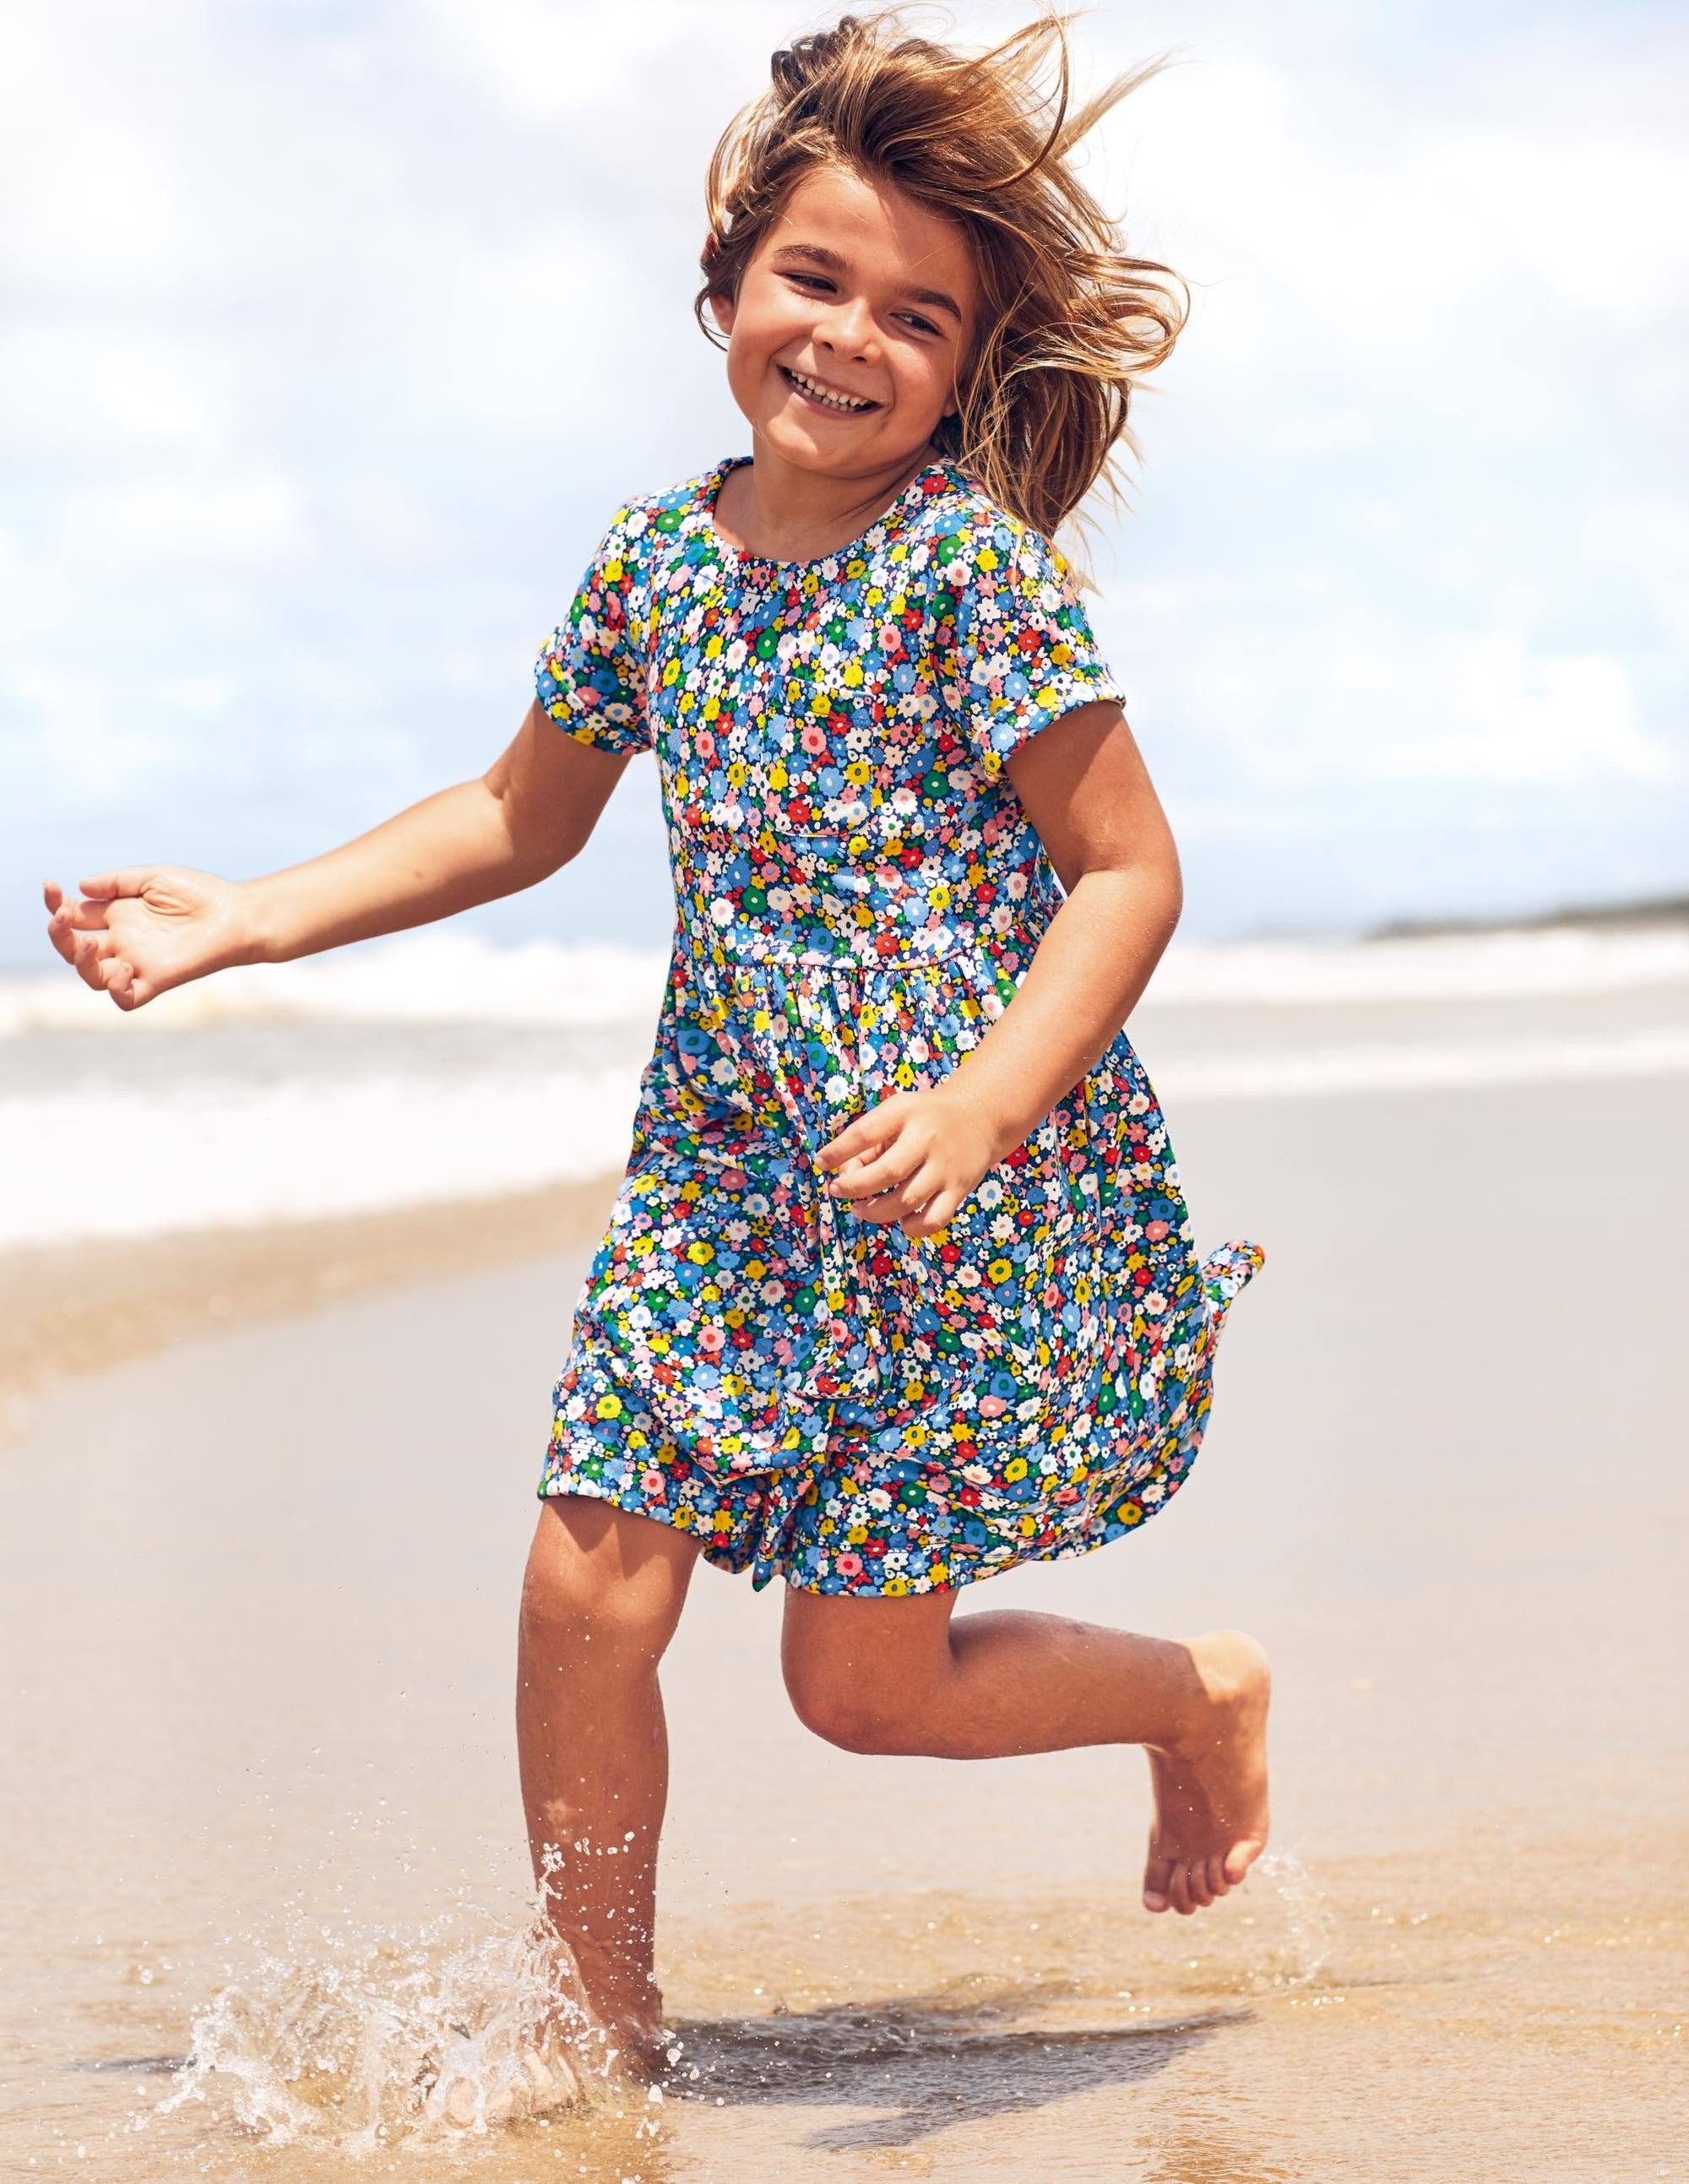 Boden Fun Jersey Dress - Elizabethan Blue Flowerpatch